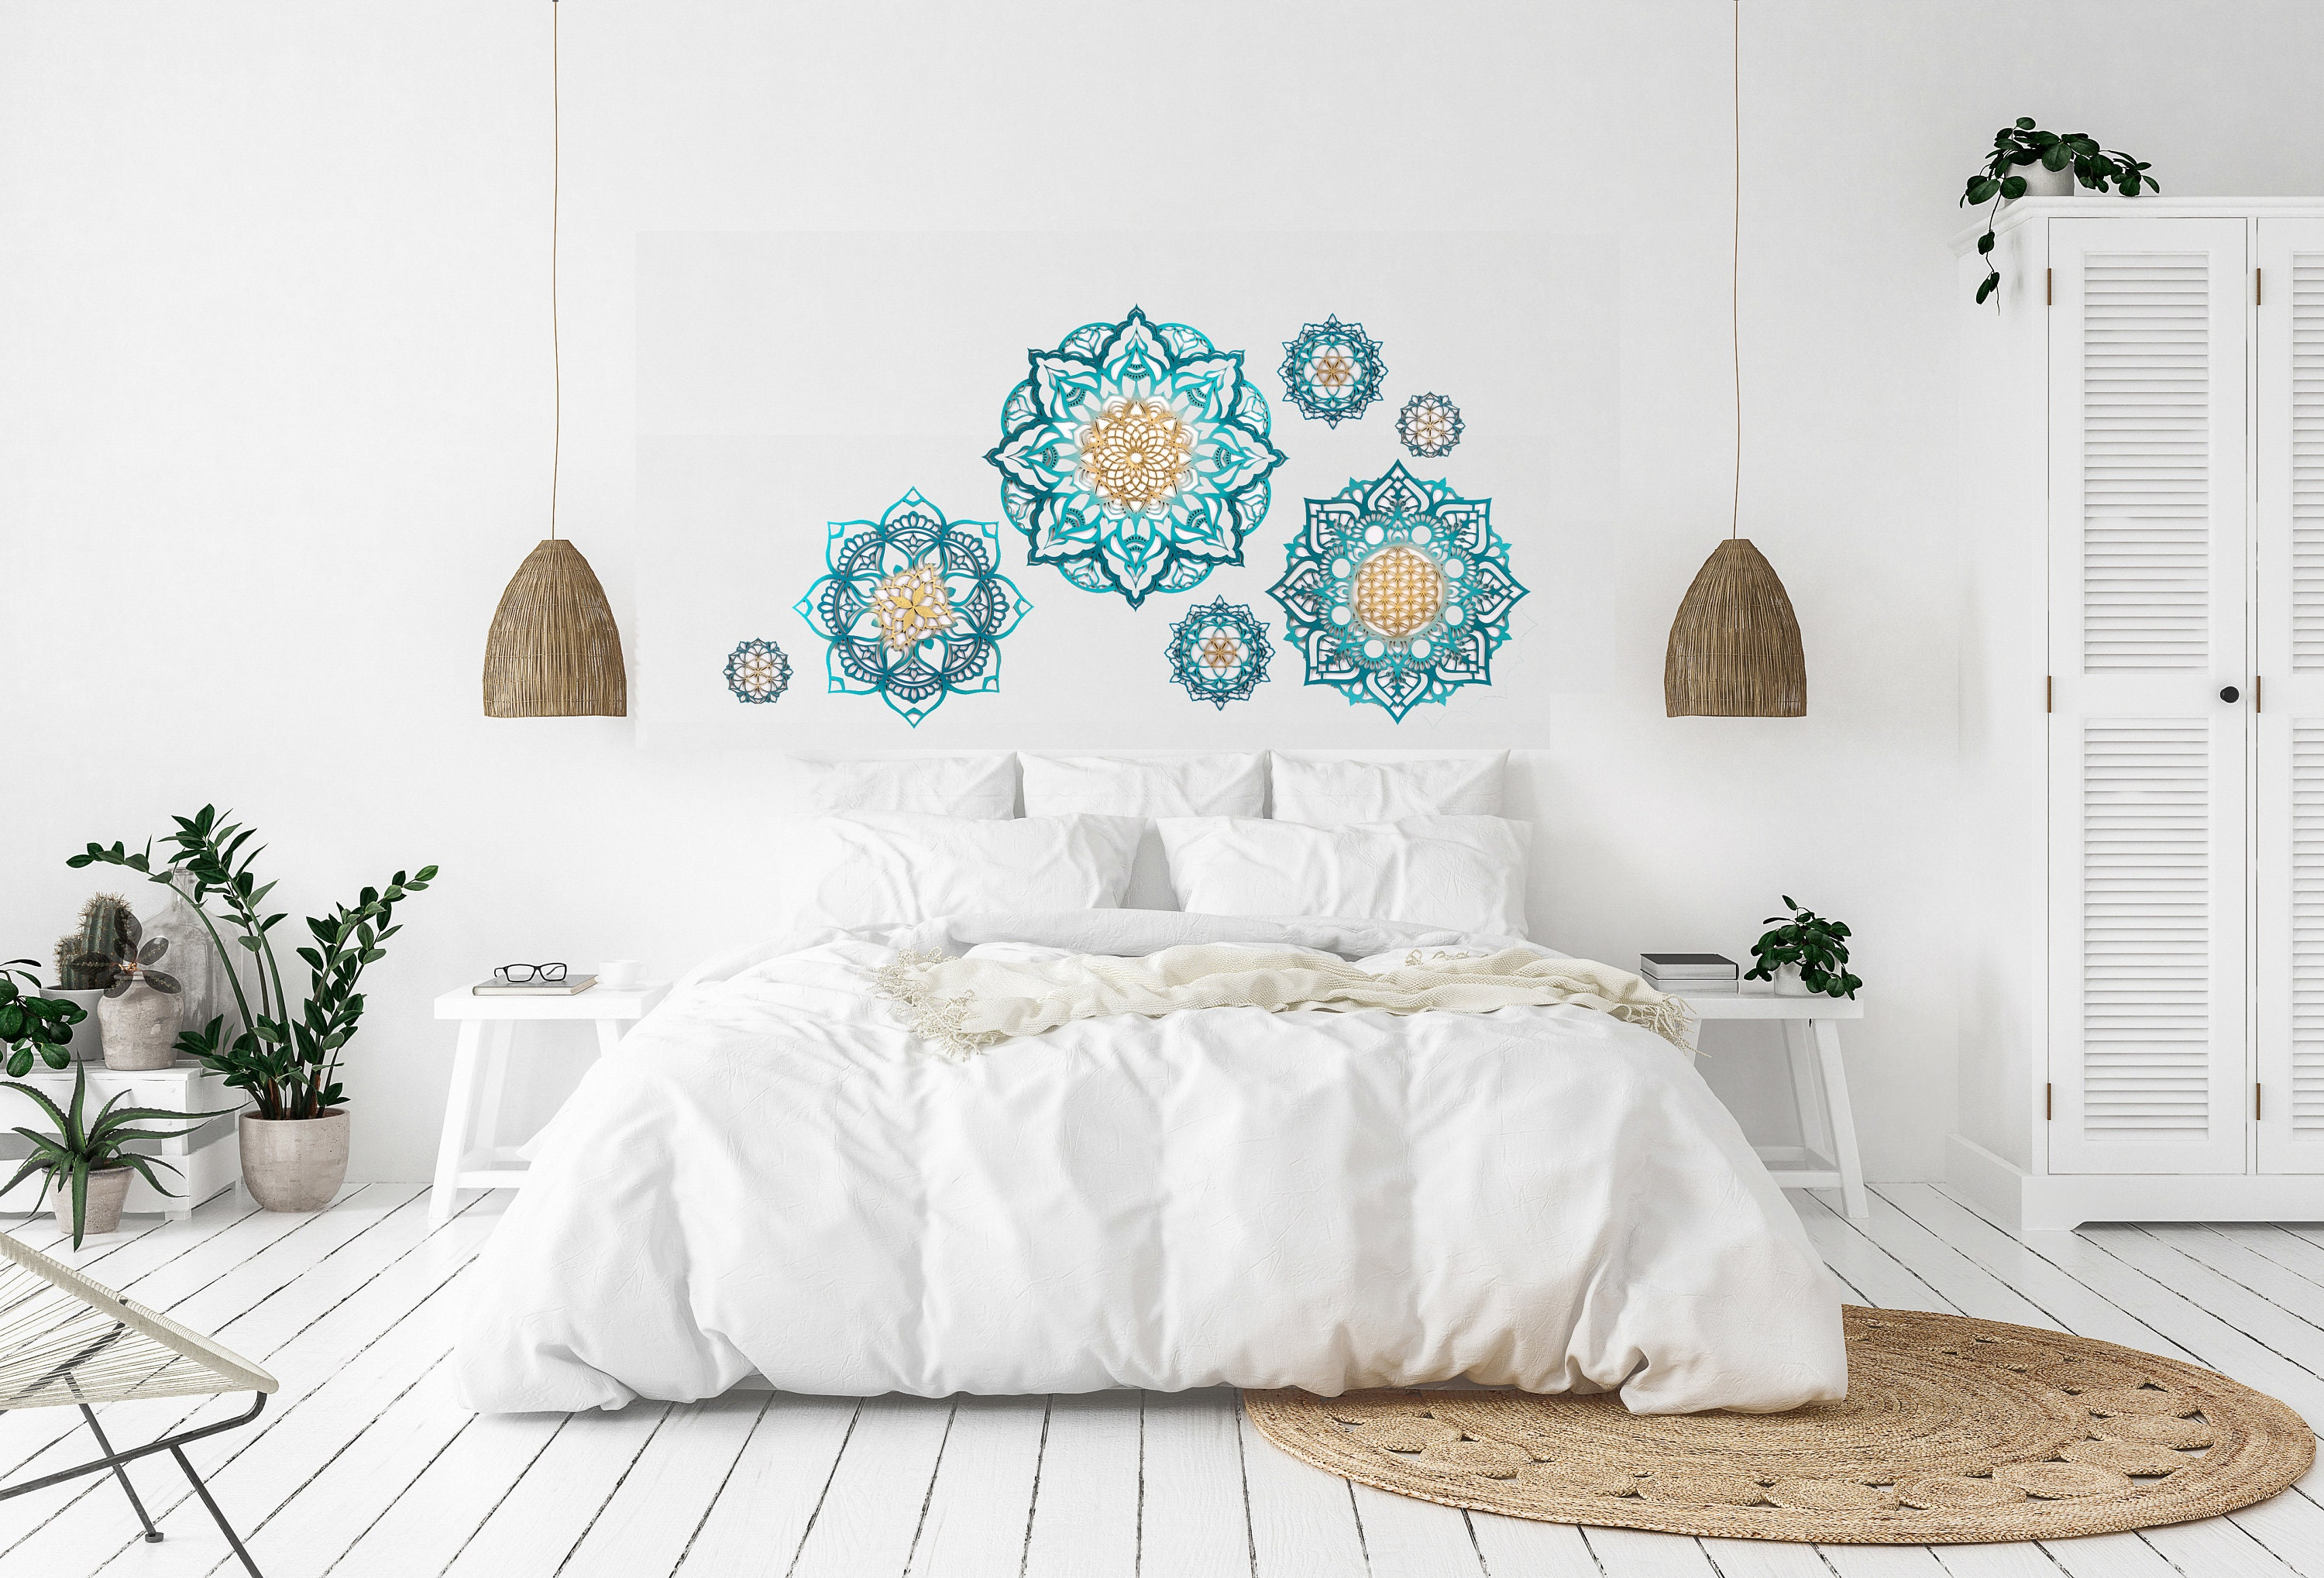 Wall Decor Set Wood Décor Bedroom Wall Decor Turquoise Wall   Etsy